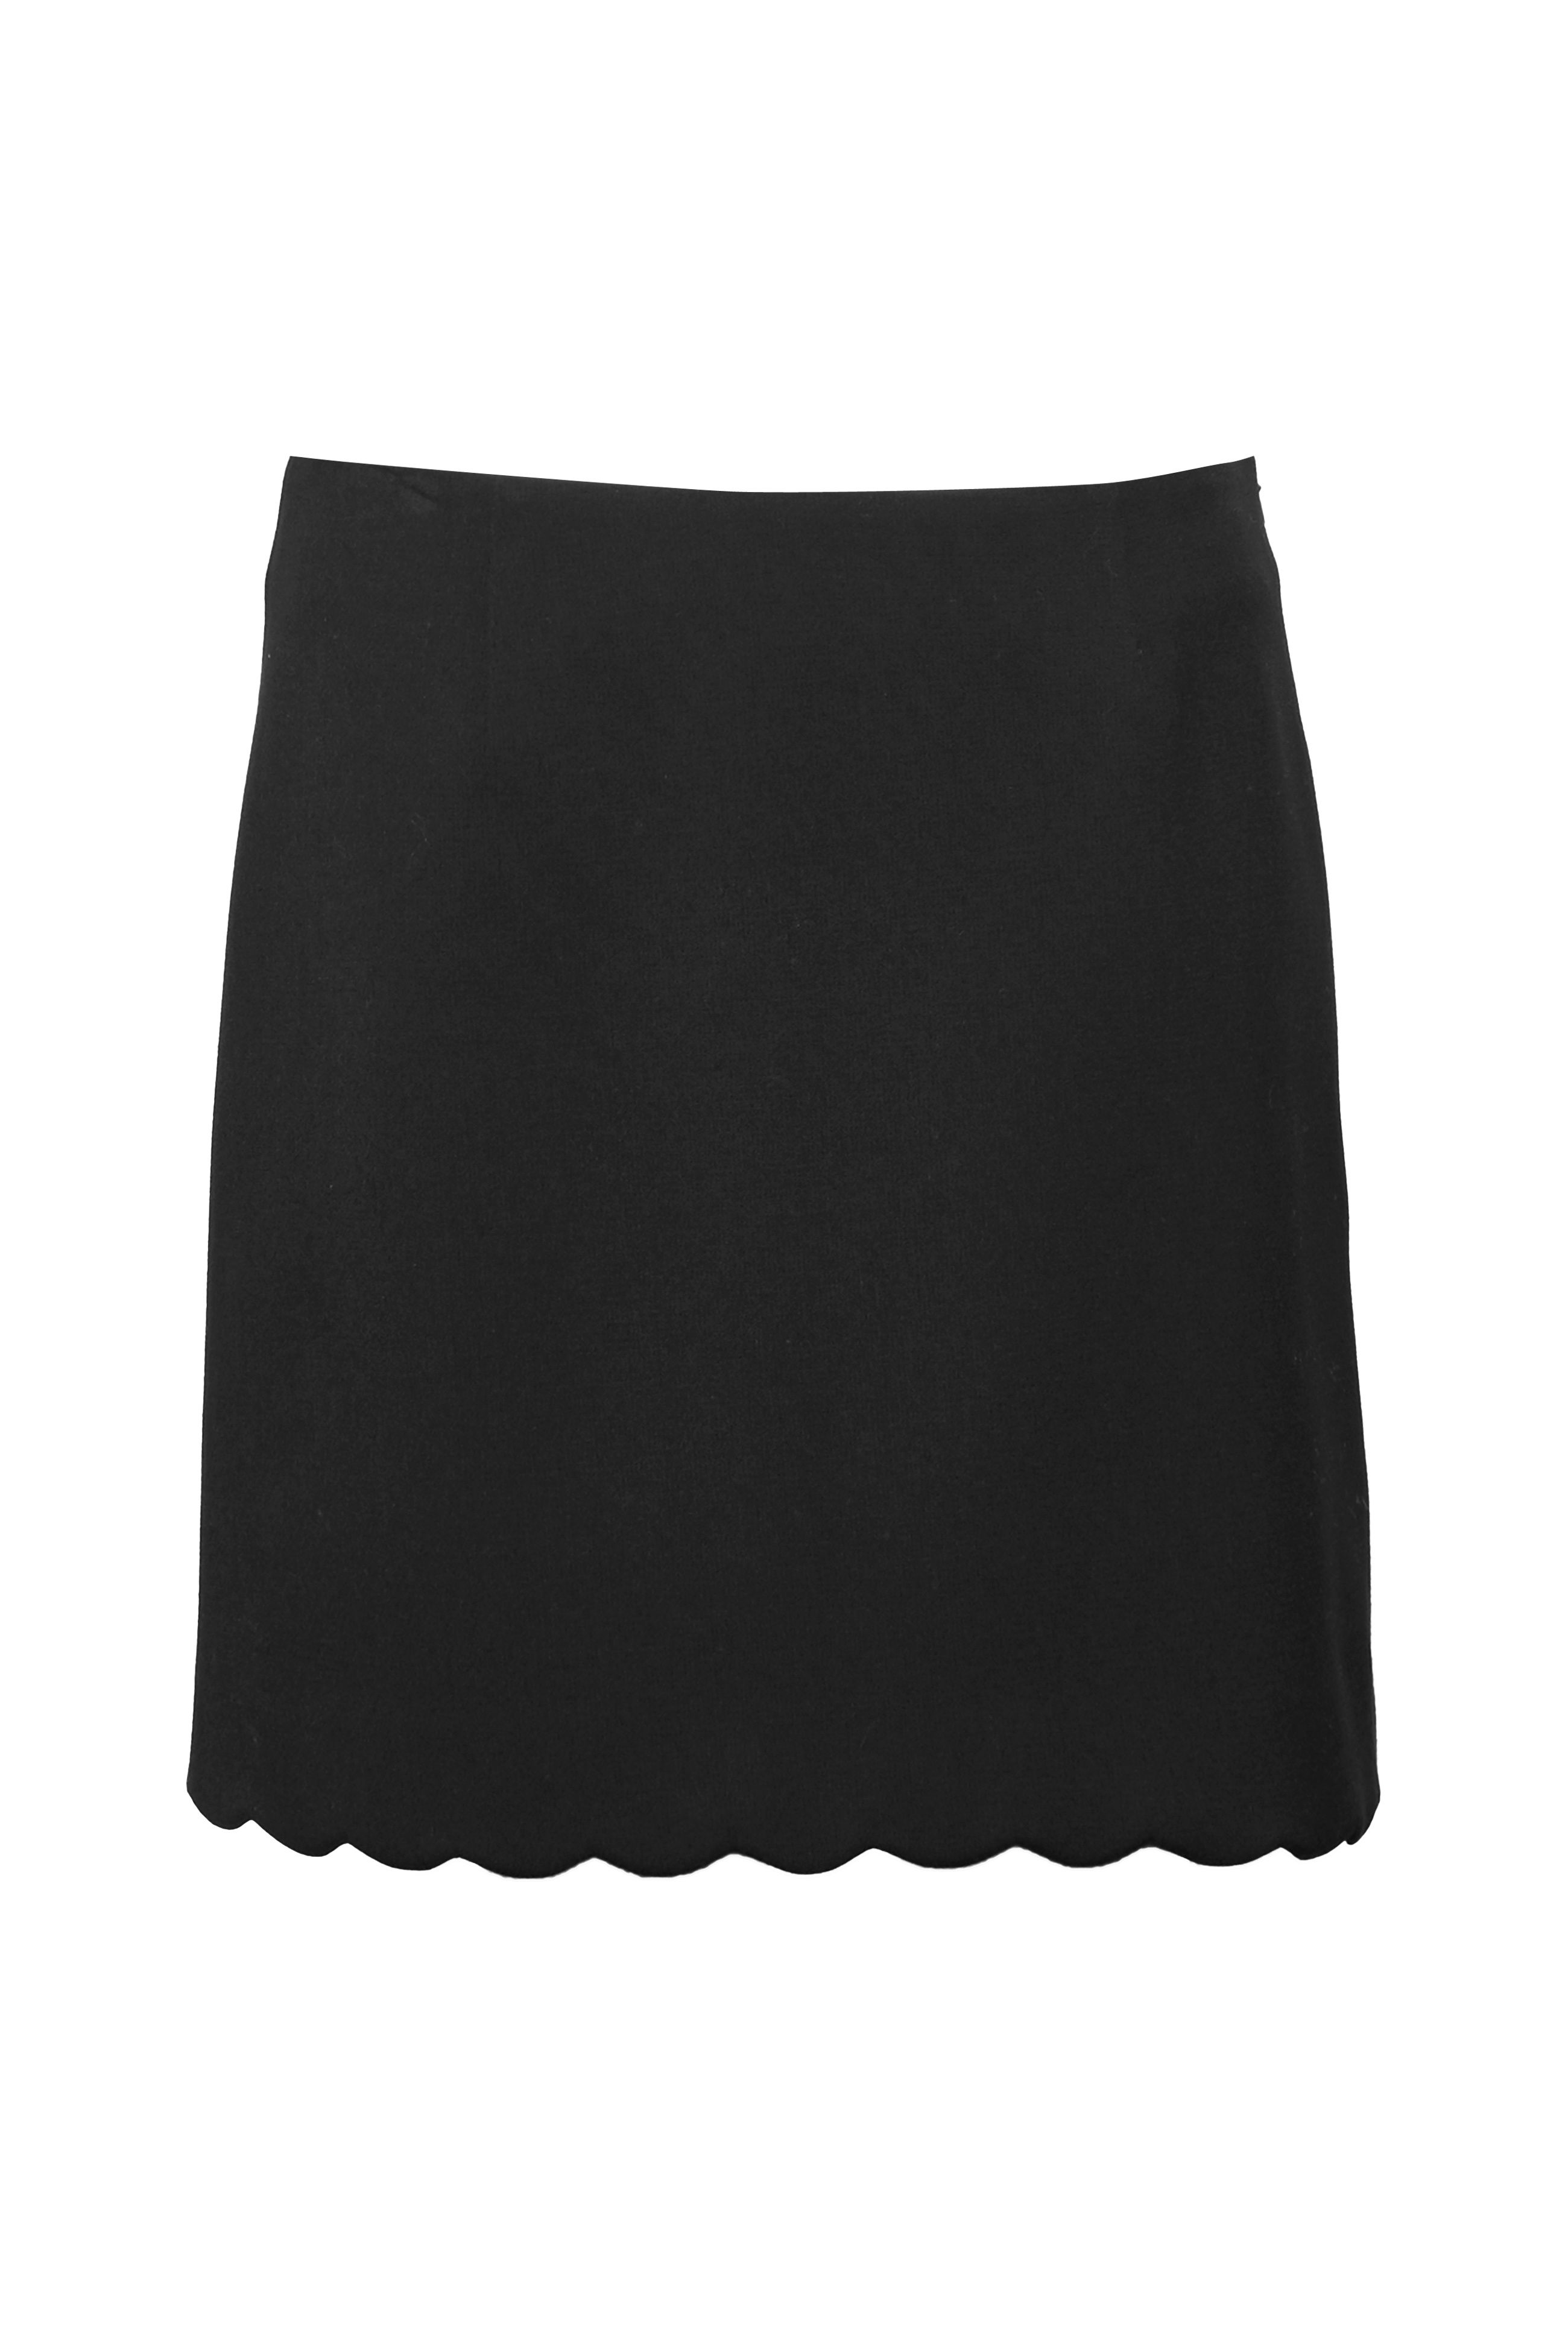 French Connection Sundae Suiting Scalloped Skirt, Black